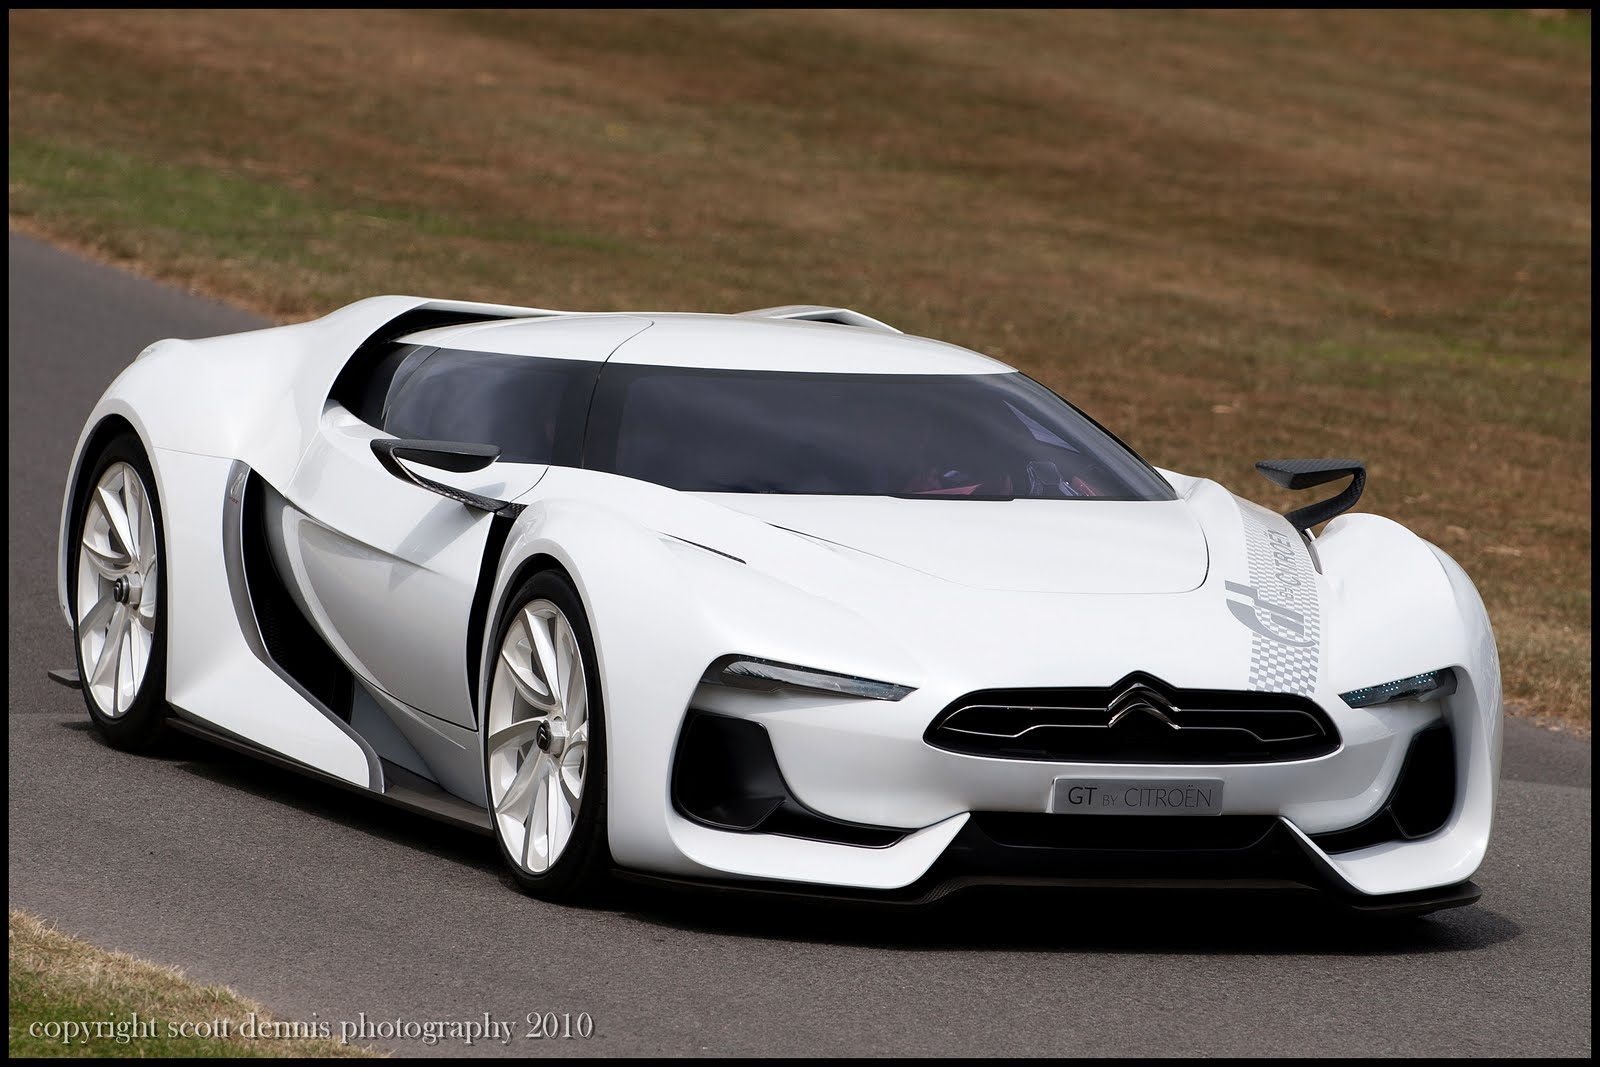 The World Of Otomotif: Citroen GT Concept Futuristic